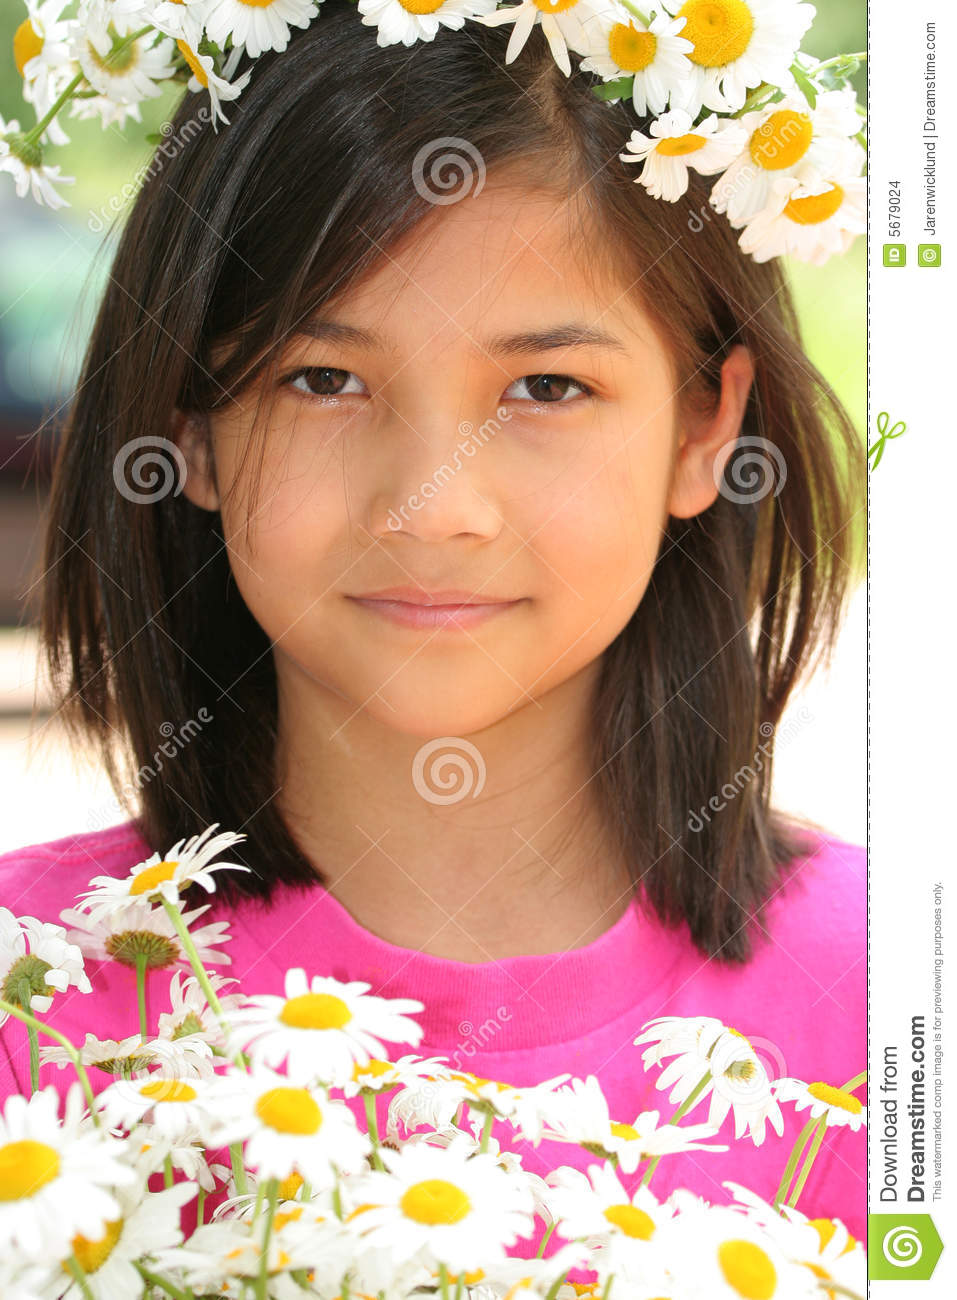 Little Girl With Crown Of Daisies Stock Images - Image ...